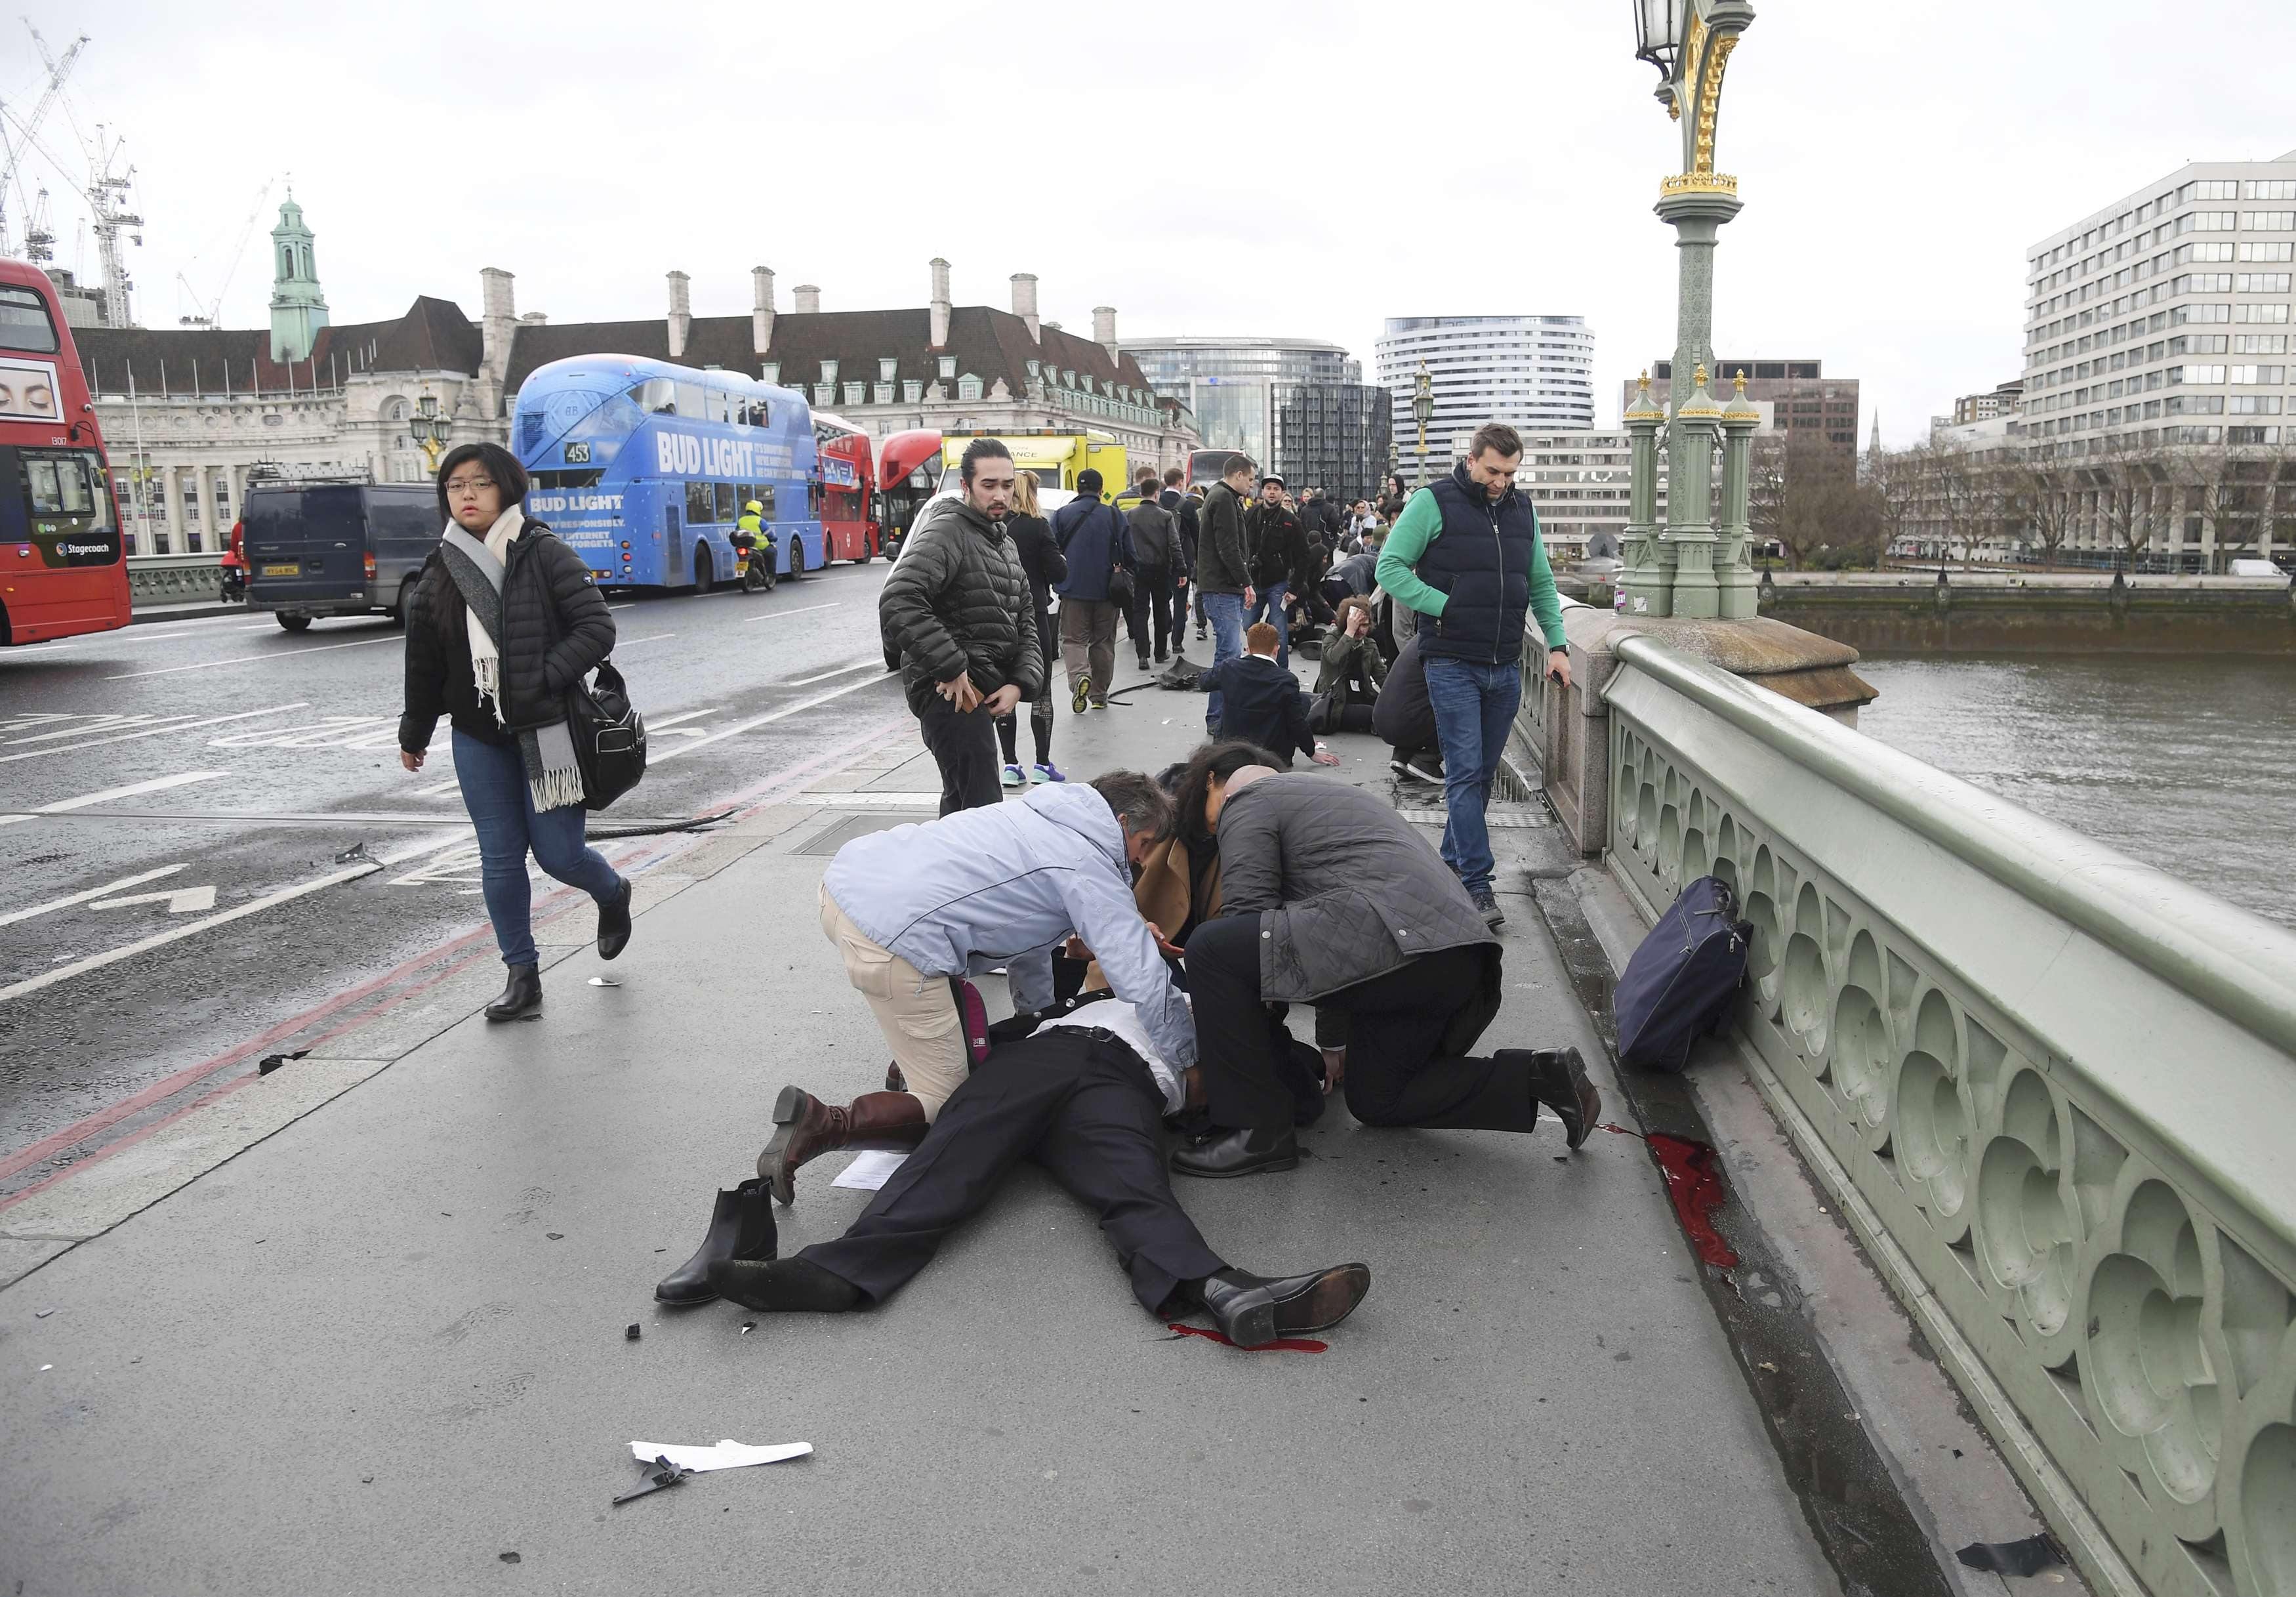 Injured people are assisted after an incident on Westminster Bridge in London, March 22, 2017. REUTERS/Toby